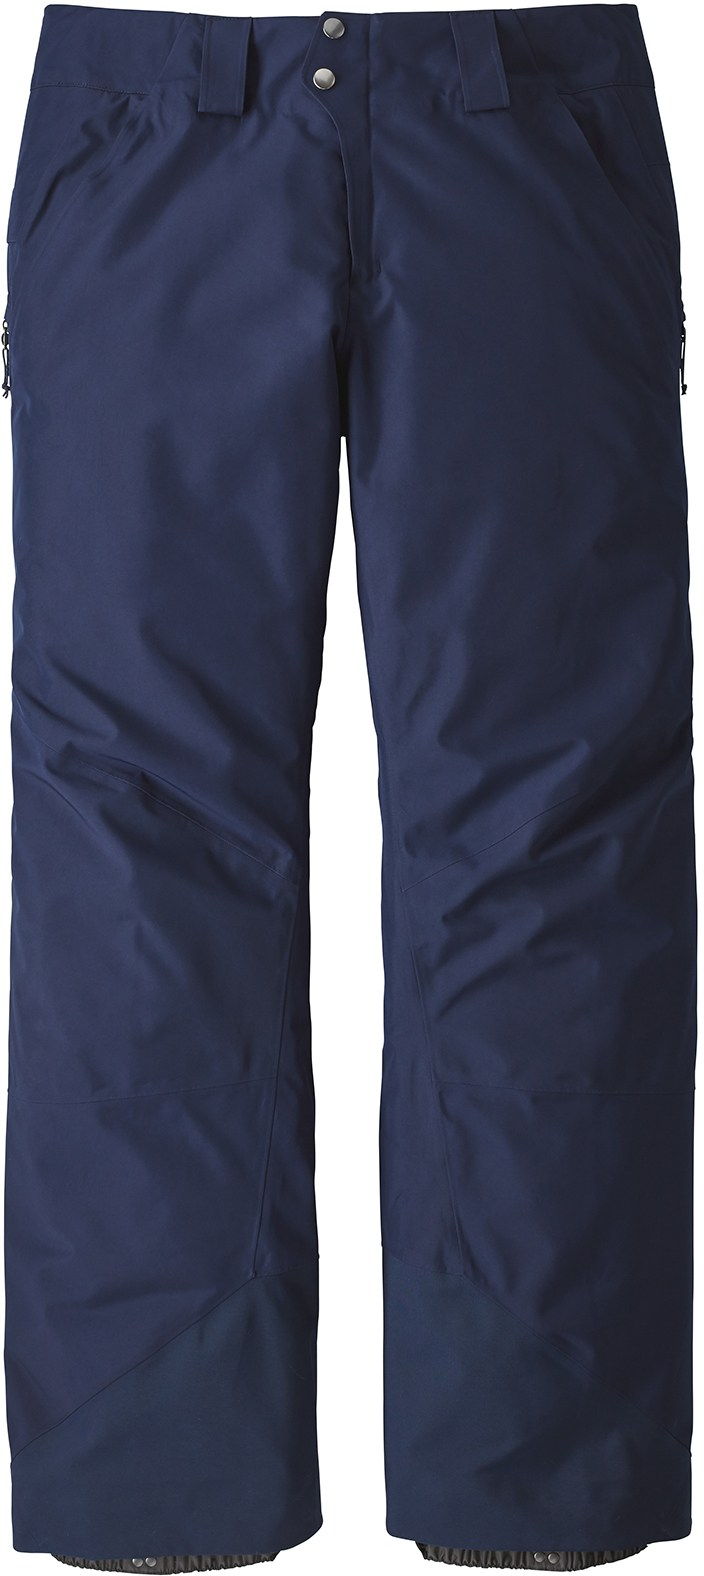 Patagonia Insulated Powder Bowl Pants - Men's